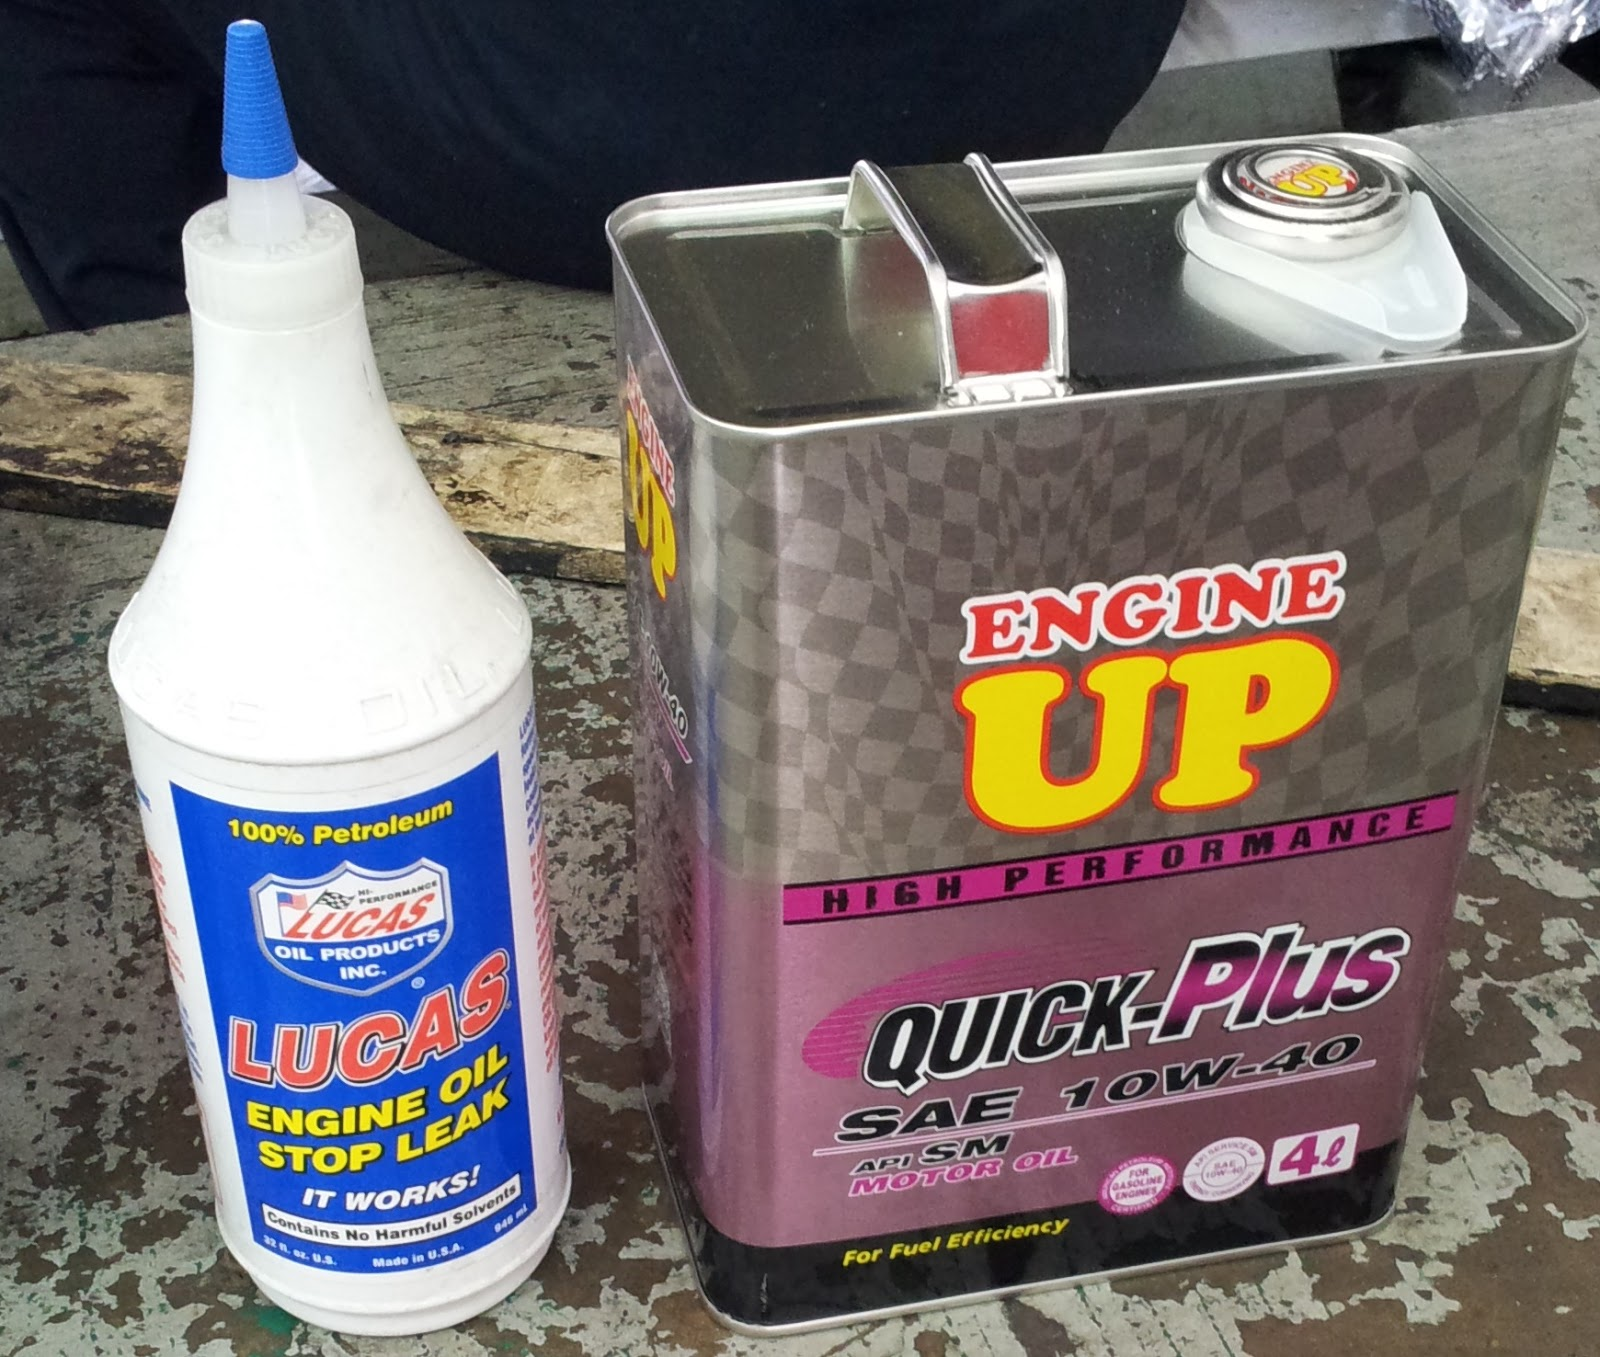 Undercoverproject proton perdana v6 servicing autozone for How much is motor oil at autozone